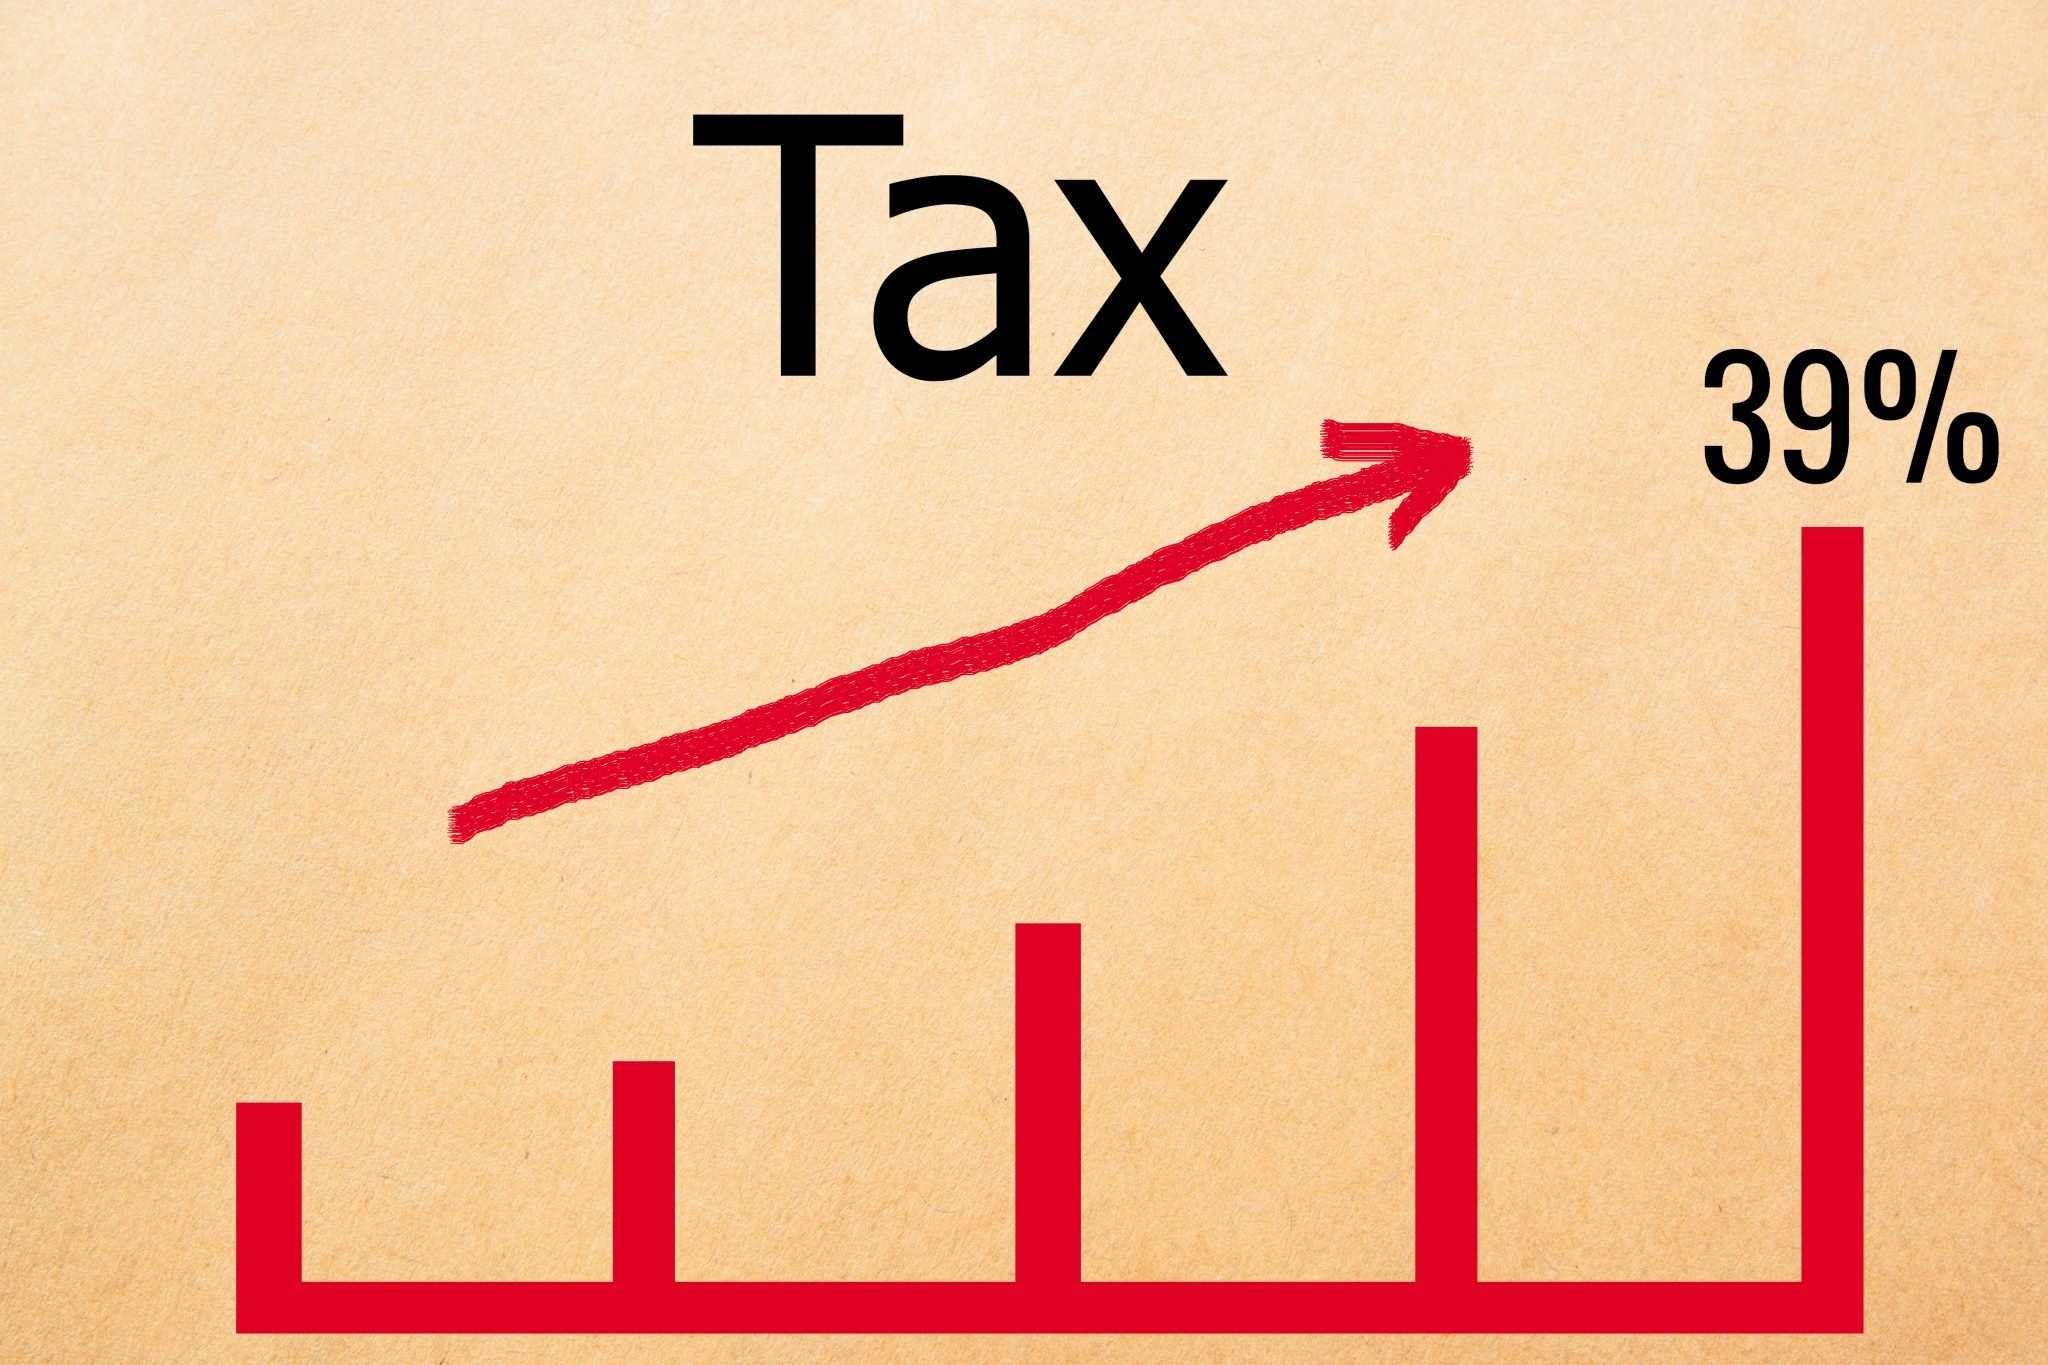 Labour to hike up top tax rate to 39%